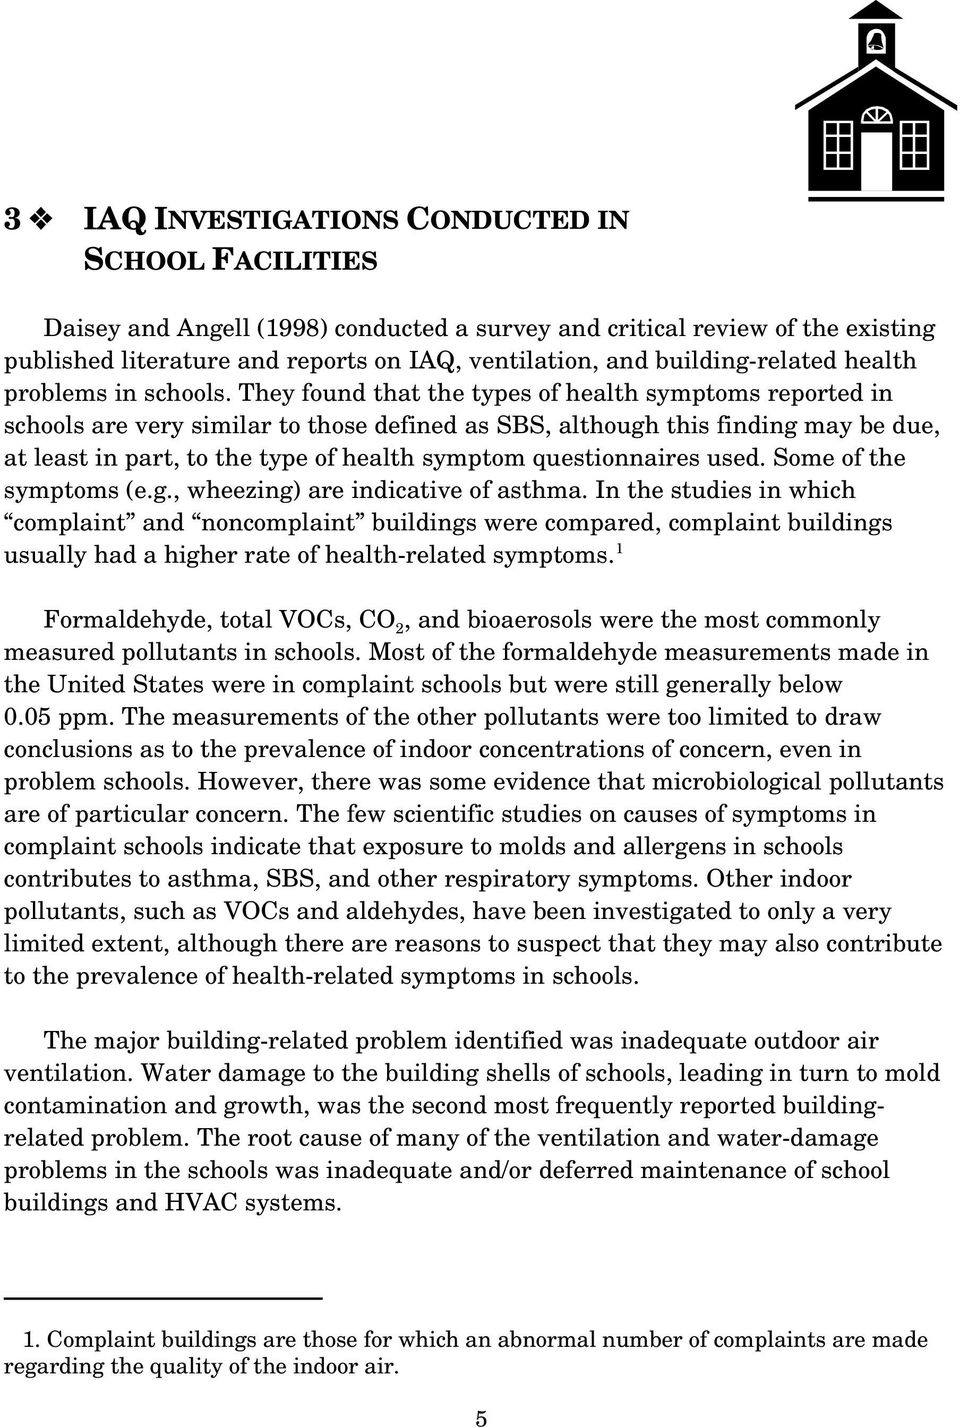 They found that the types of health symptoms reported in schools are very similar to those defined as SBS, although this finding may be due, at least in part, to the type of health symptom